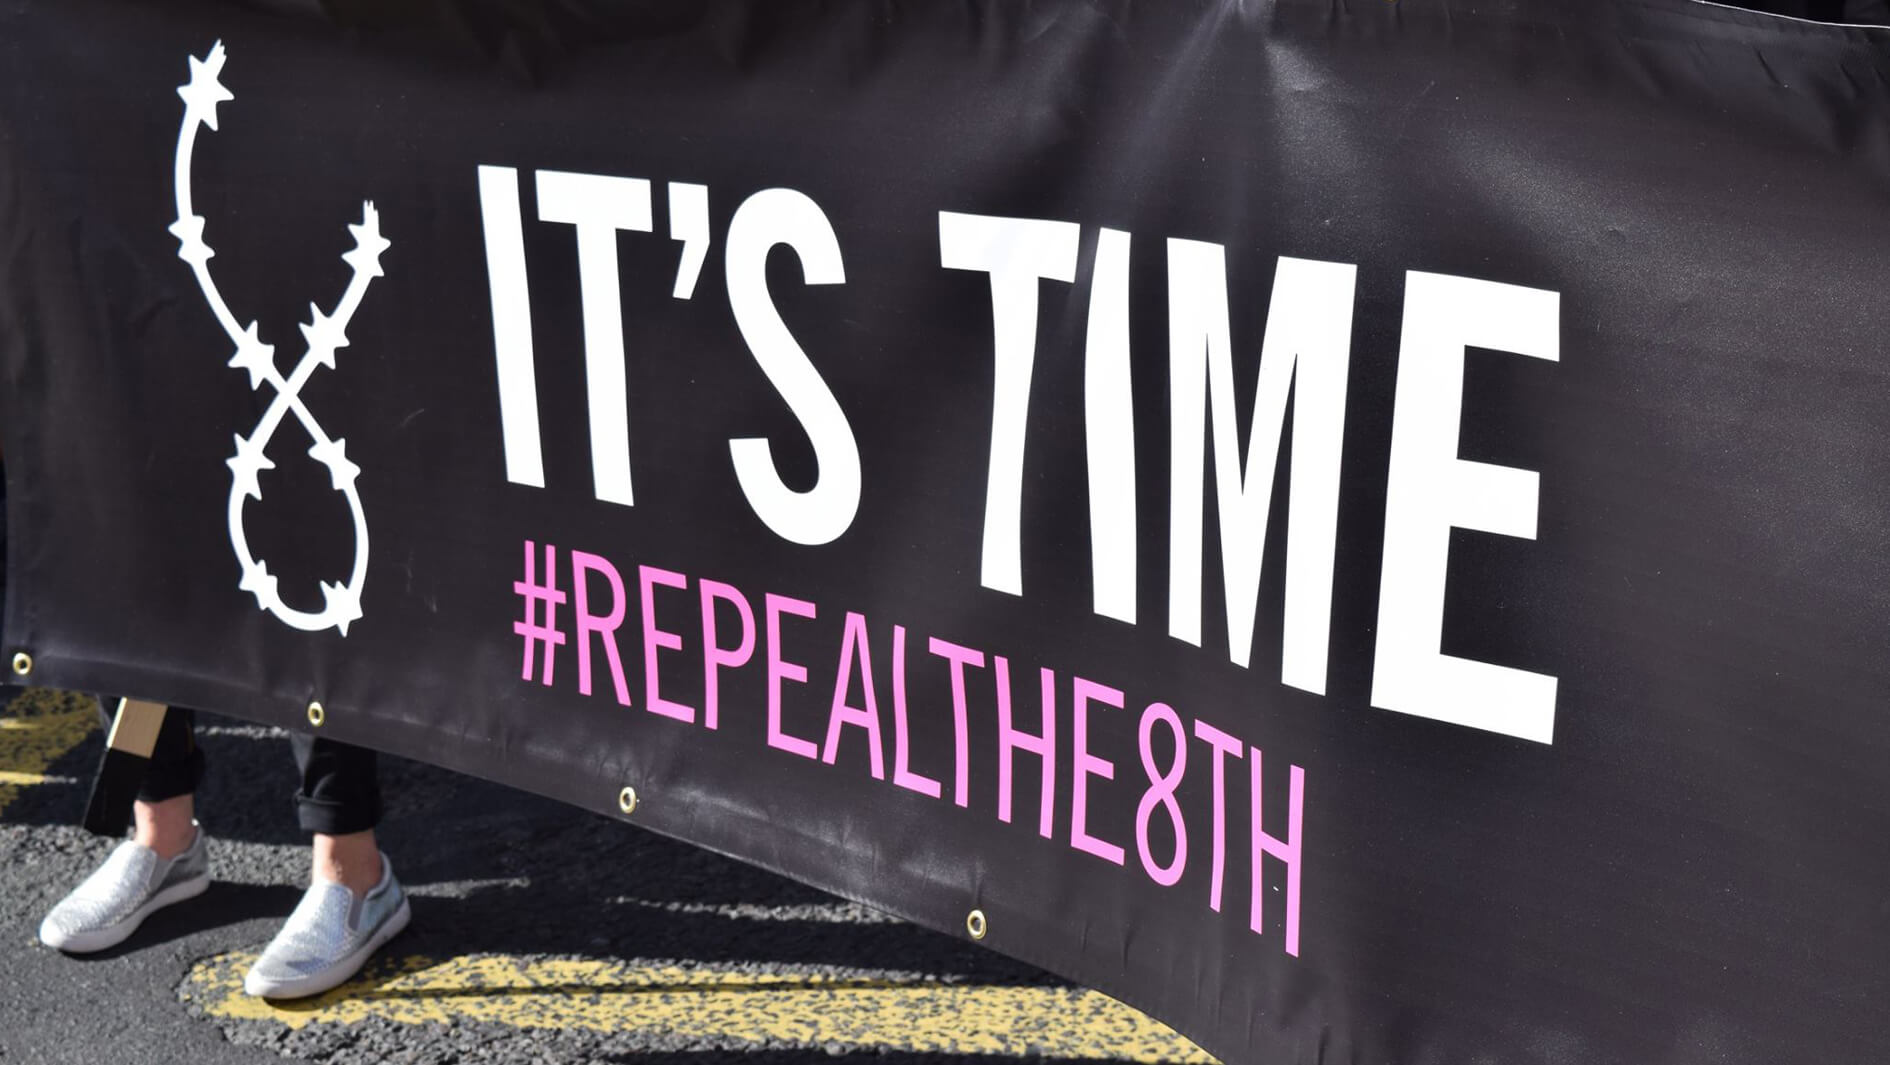 Amnesty It's Time Repeal The 8th